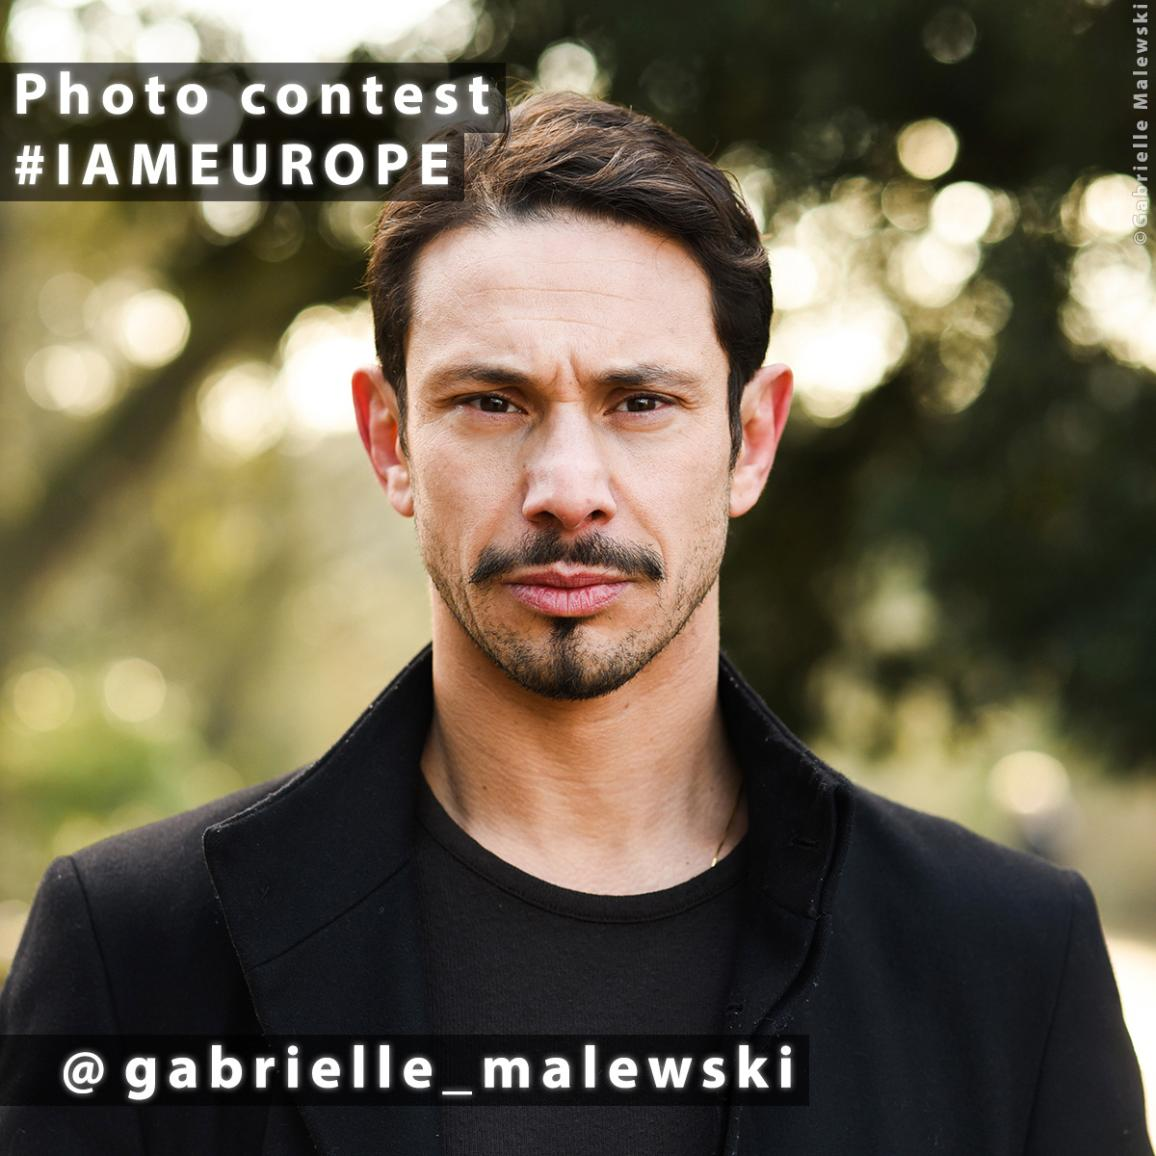 Special thanks to the French photographer Gabrielle Malewski (instagram @gabrielle_malewski)  for your photo contest testimonial